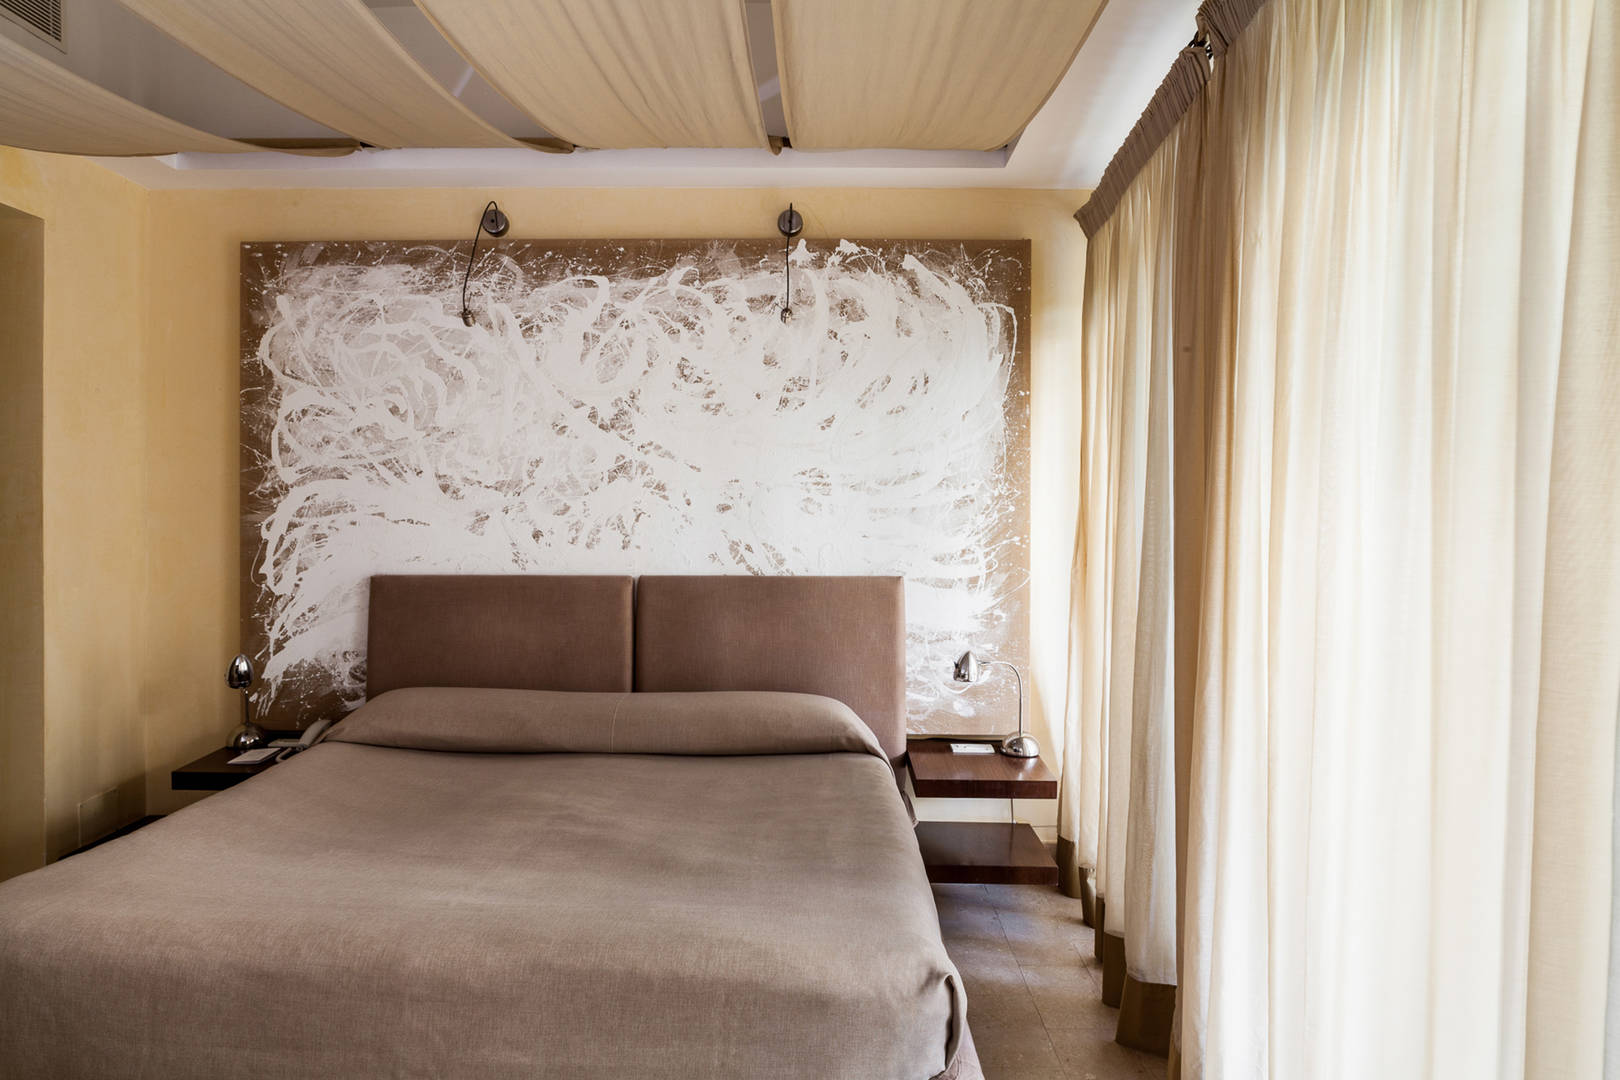 Capri Palace Jumeirah Suites wth Private Pool and Garden Andromeda Bedroom